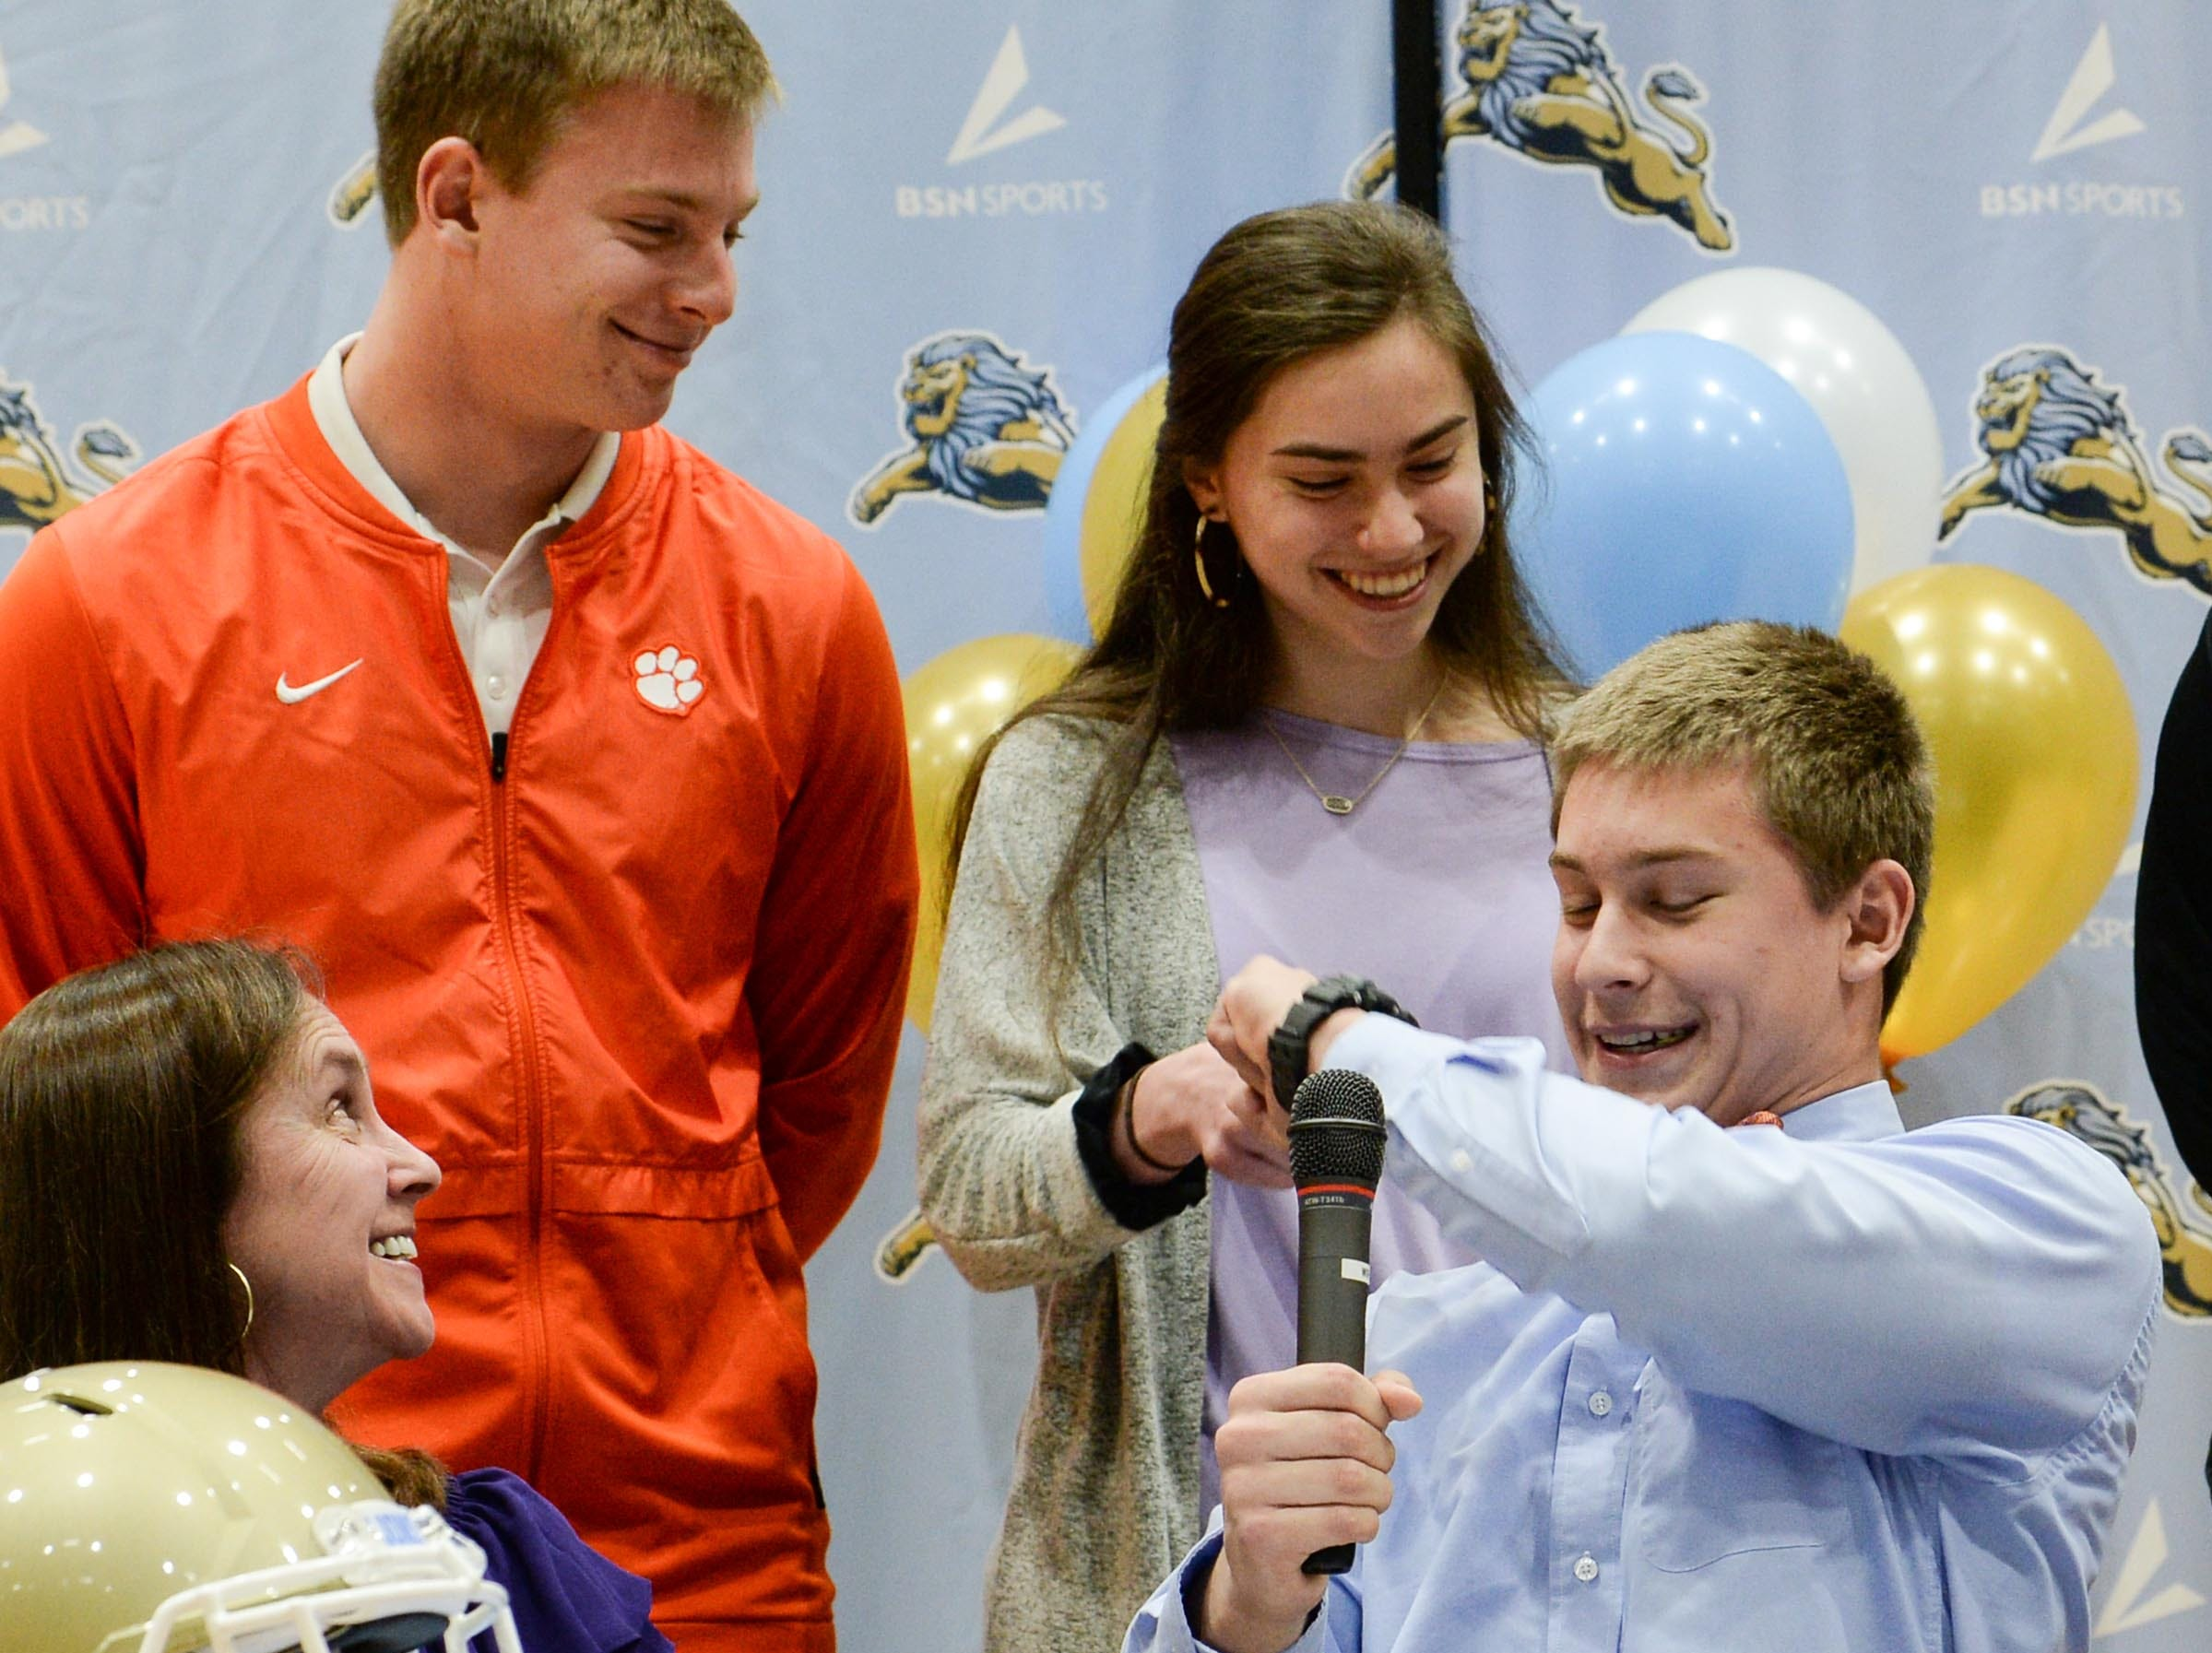 Clemson University football preferred walk on signee Matthew Maloney gives a fist bump to his sister Jessica Maloney near his brother Jacob and mother Tina during National Letter of Intent signing day at D.W. Daniel High School in Central Wednesday.